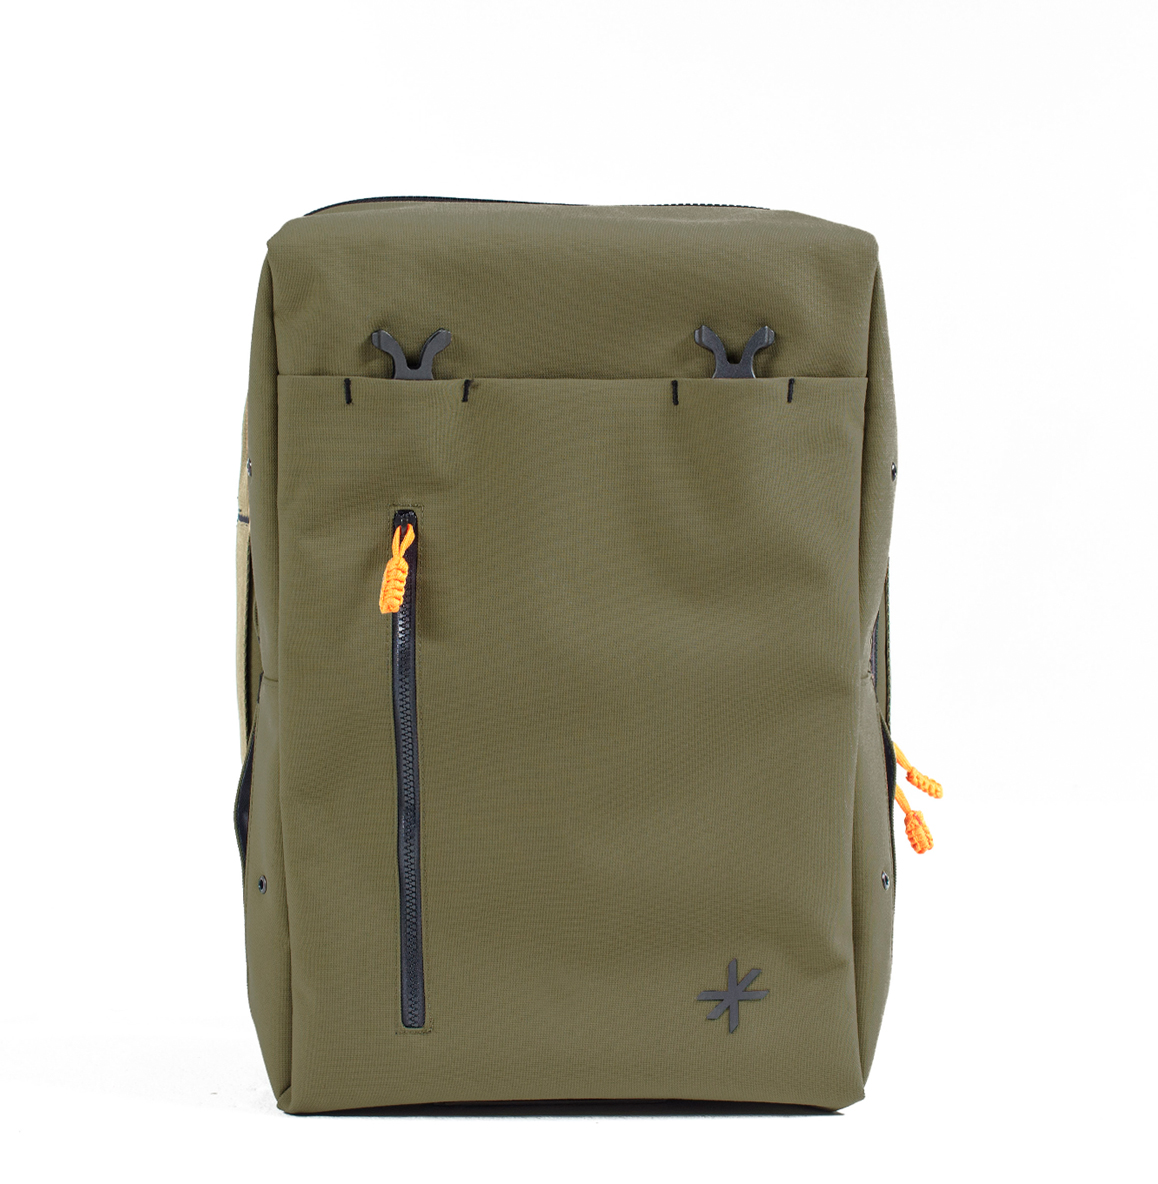 The Shrine 『WEEKENDER SNEAKER BACKPACK』 color : OLIVE